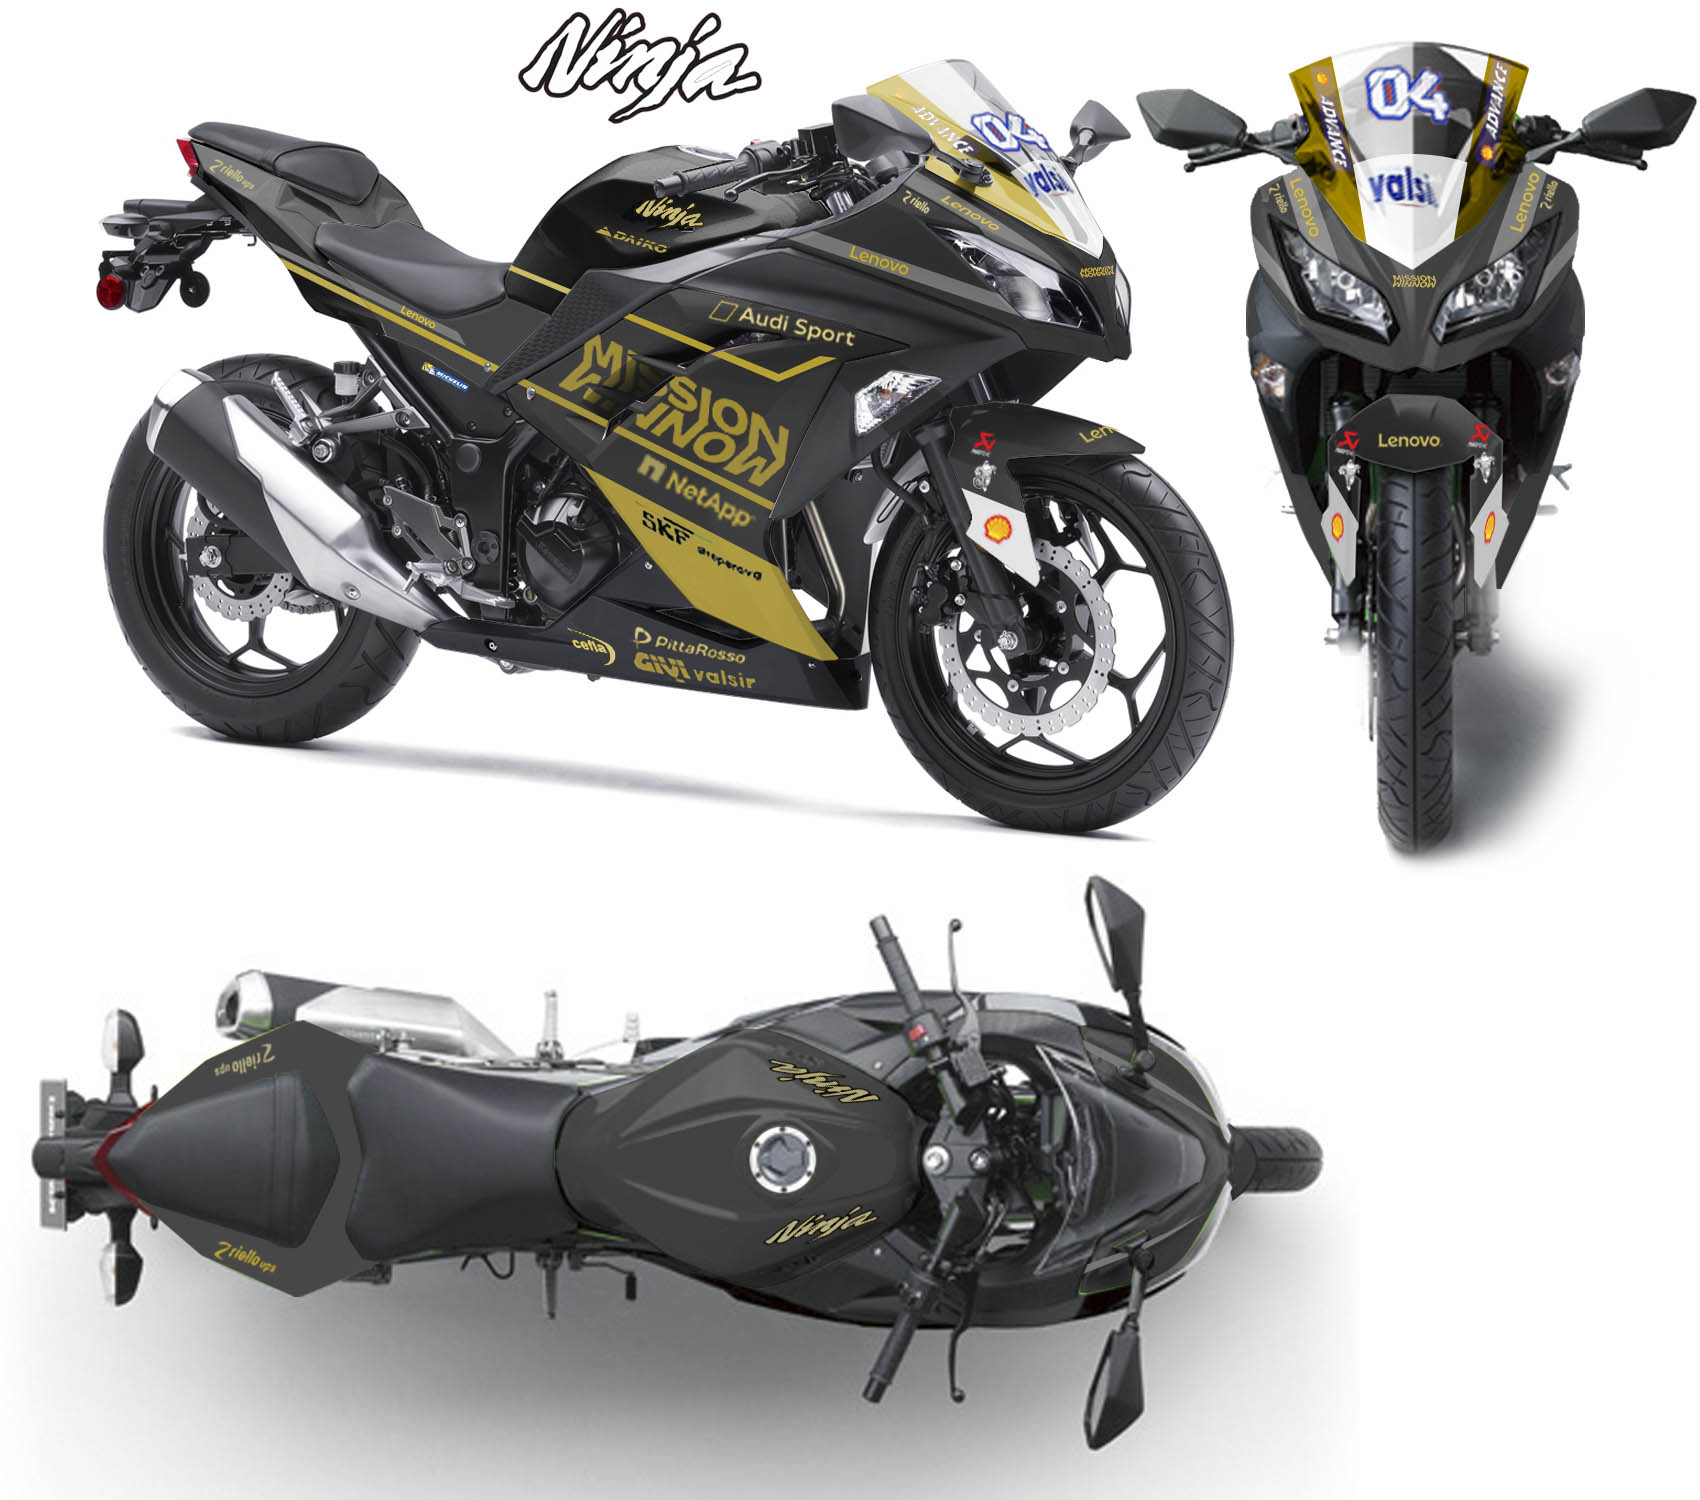 Modifikasi striping Kawasaki Ninja 250R Fi Mission Winnow Black gold